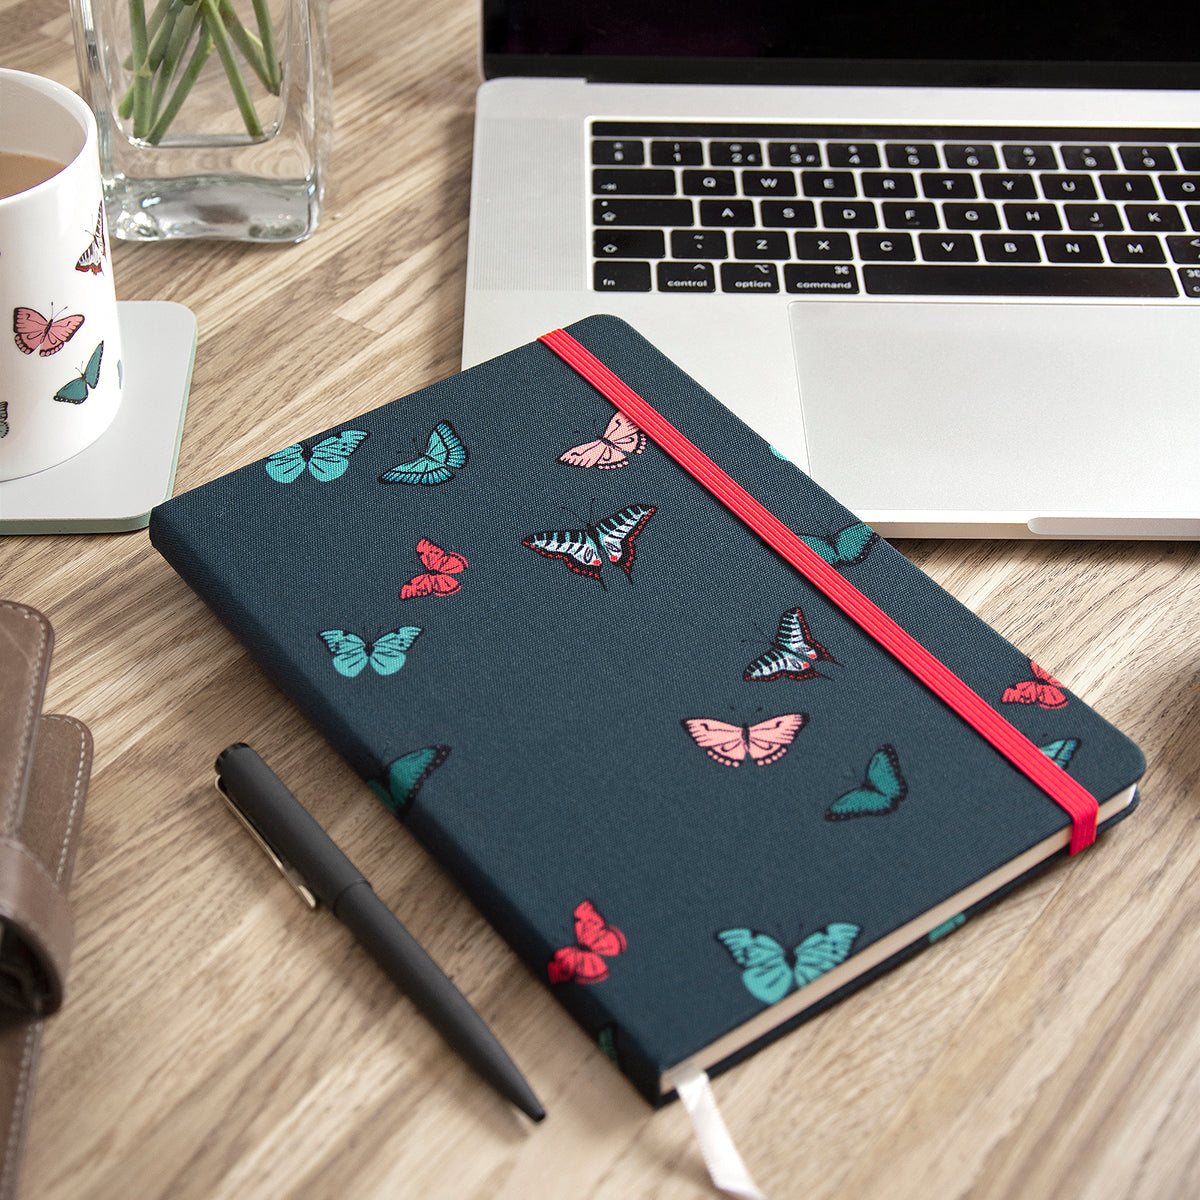 Navy notebook covered in butterflies by Sophie Allport